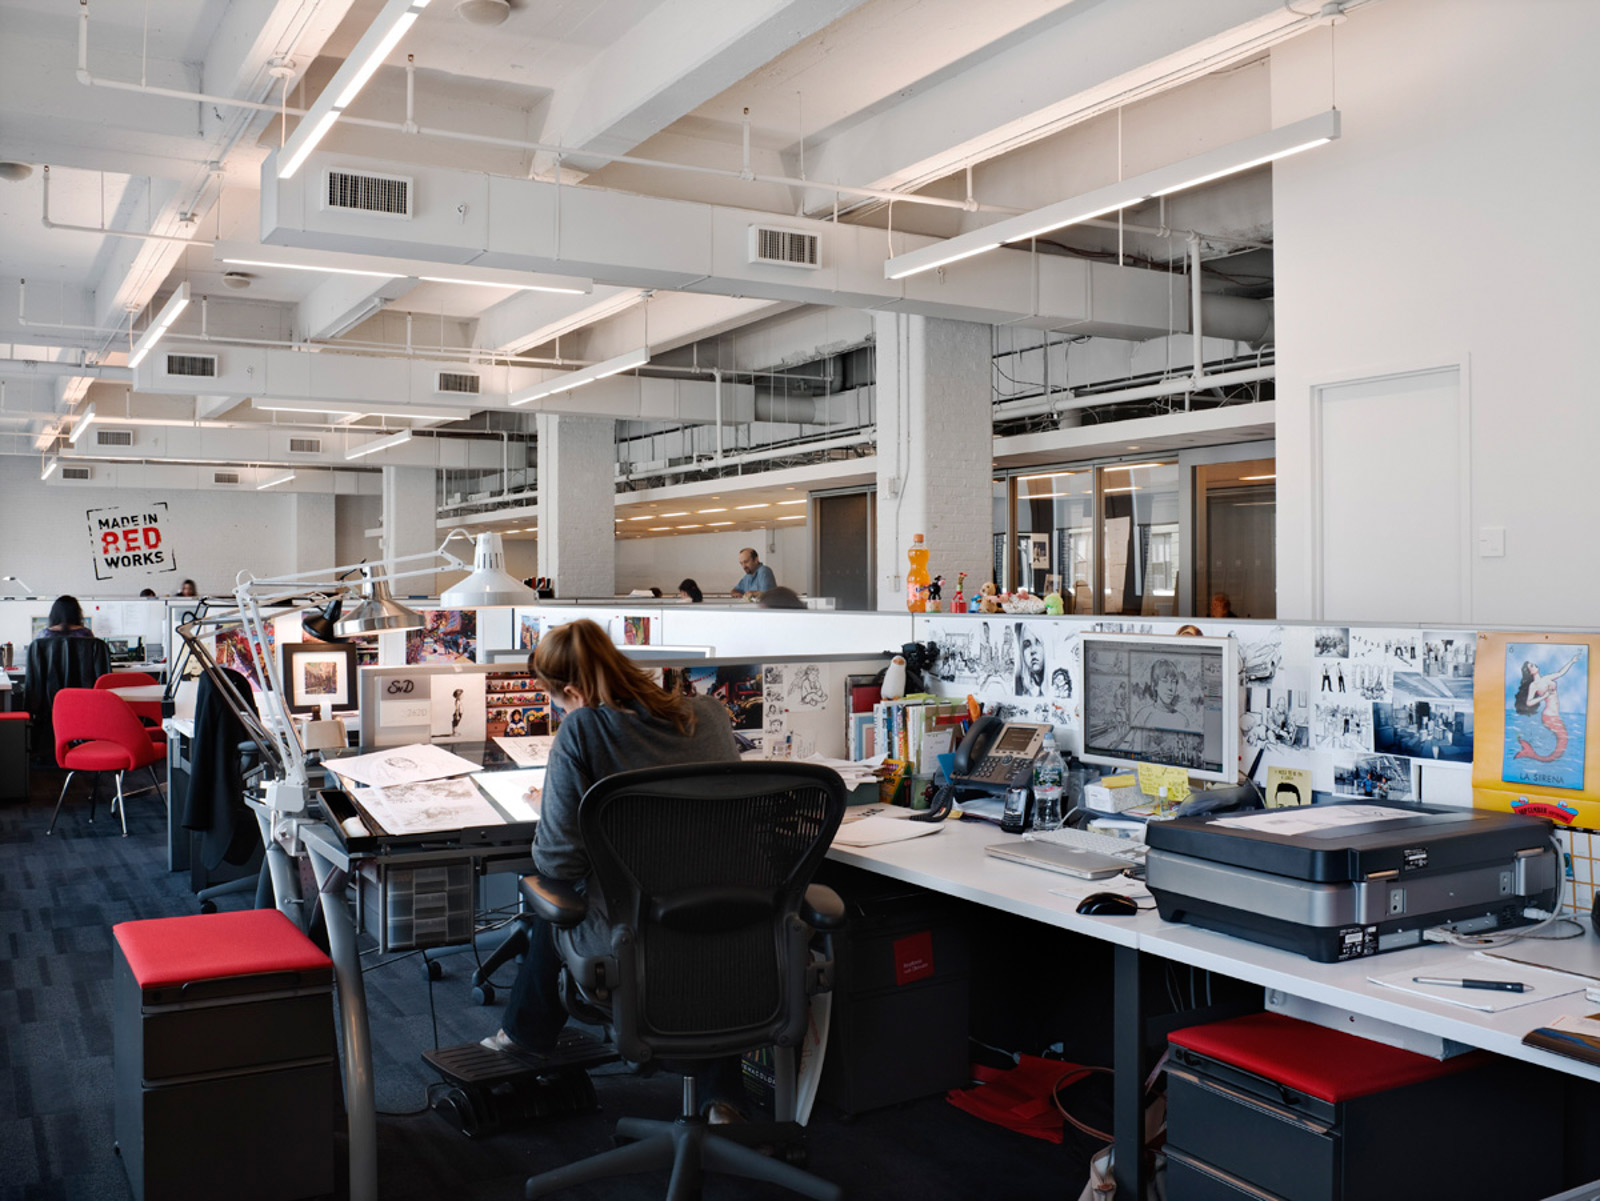 ogilvy new york office. Ogilvy New York Office. Office A 0